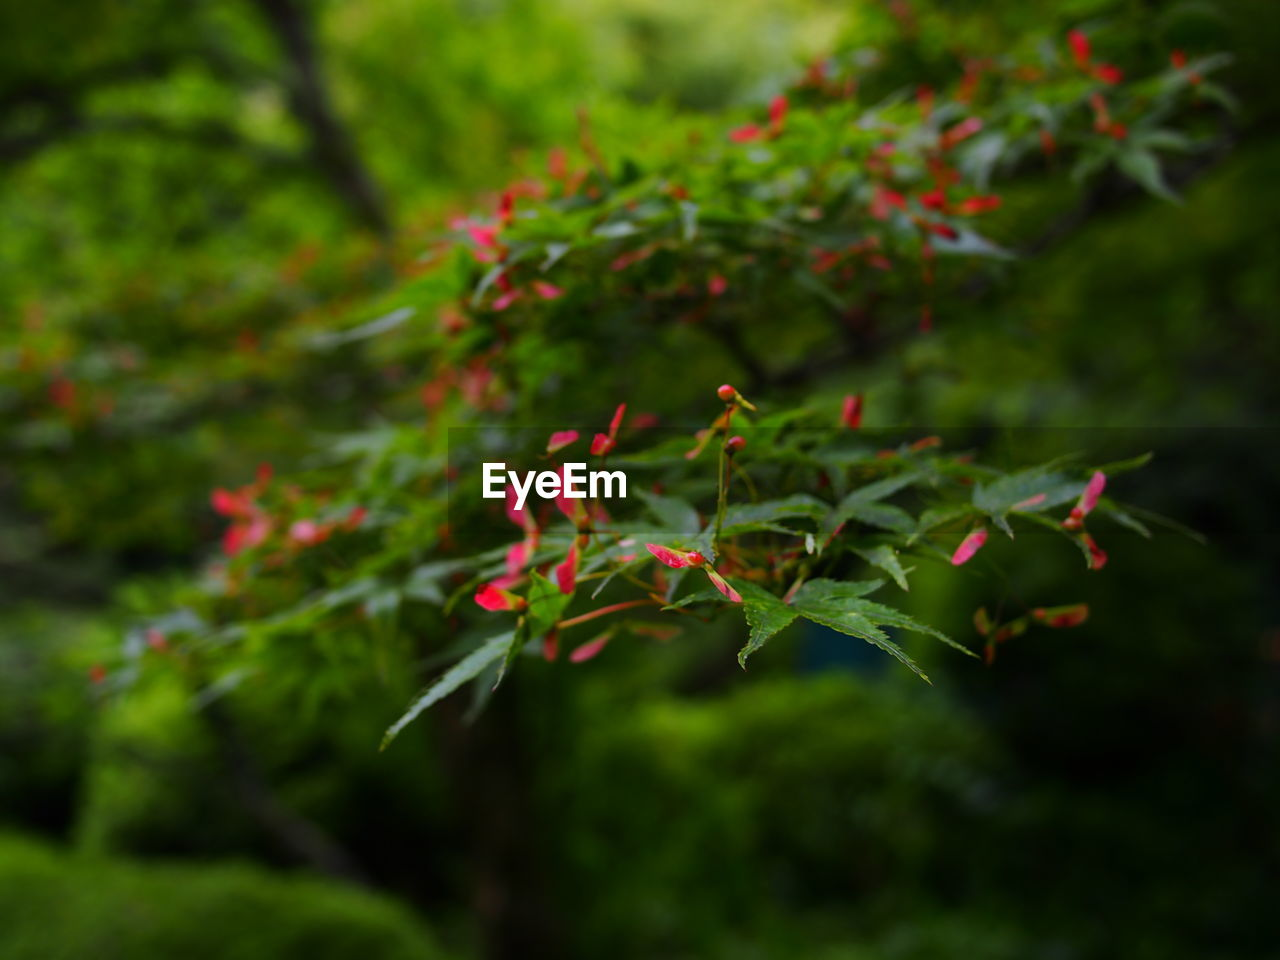 growth, plant, green color, beauty in nature, leaf, plant part, nature, no people, selective focus, outdoors, close-up, day, red, tranquility, field, focus on foreground, land, food and drink, food, freshness, leaves